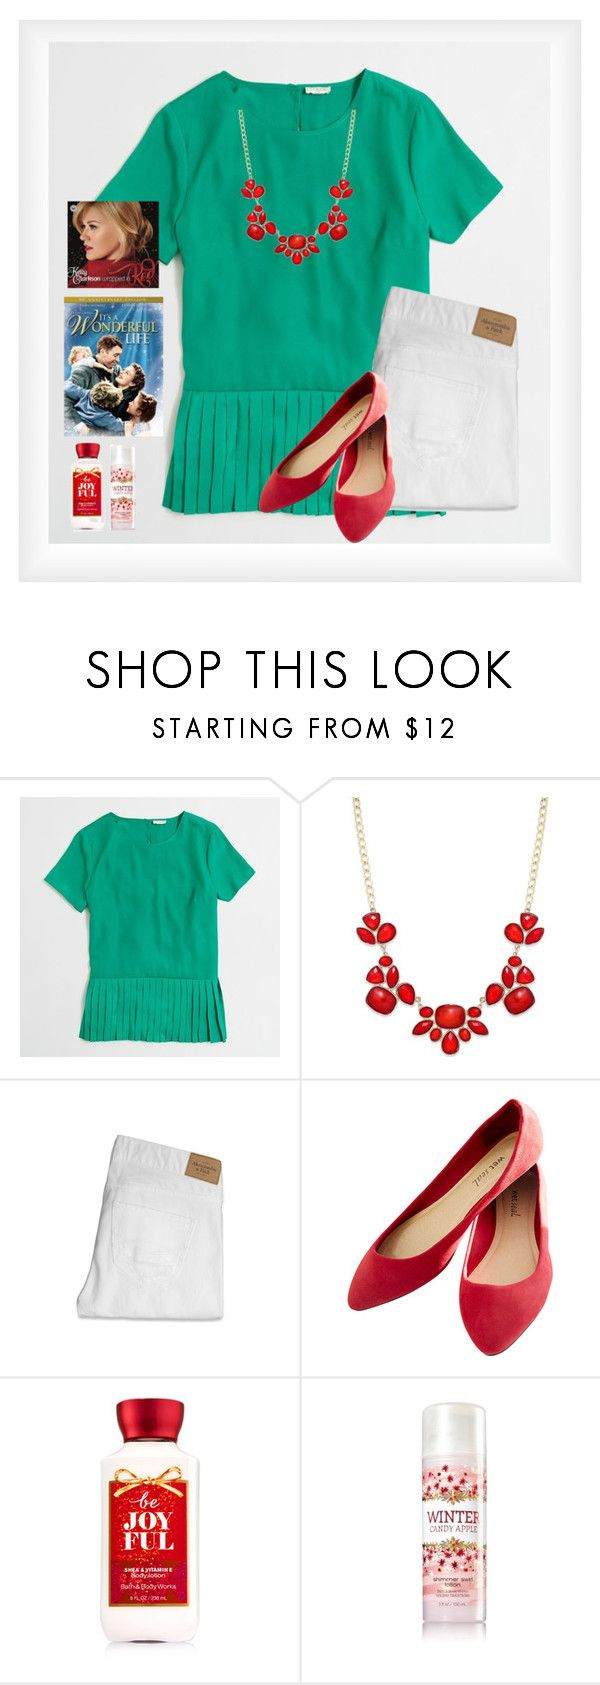 """""""Where the tree tops glisten"""" by avamariebrown ❤ liked on Polyvore featuring J.Crew, Style & Co., Abercrombie & Fitch and Wet Seal"""